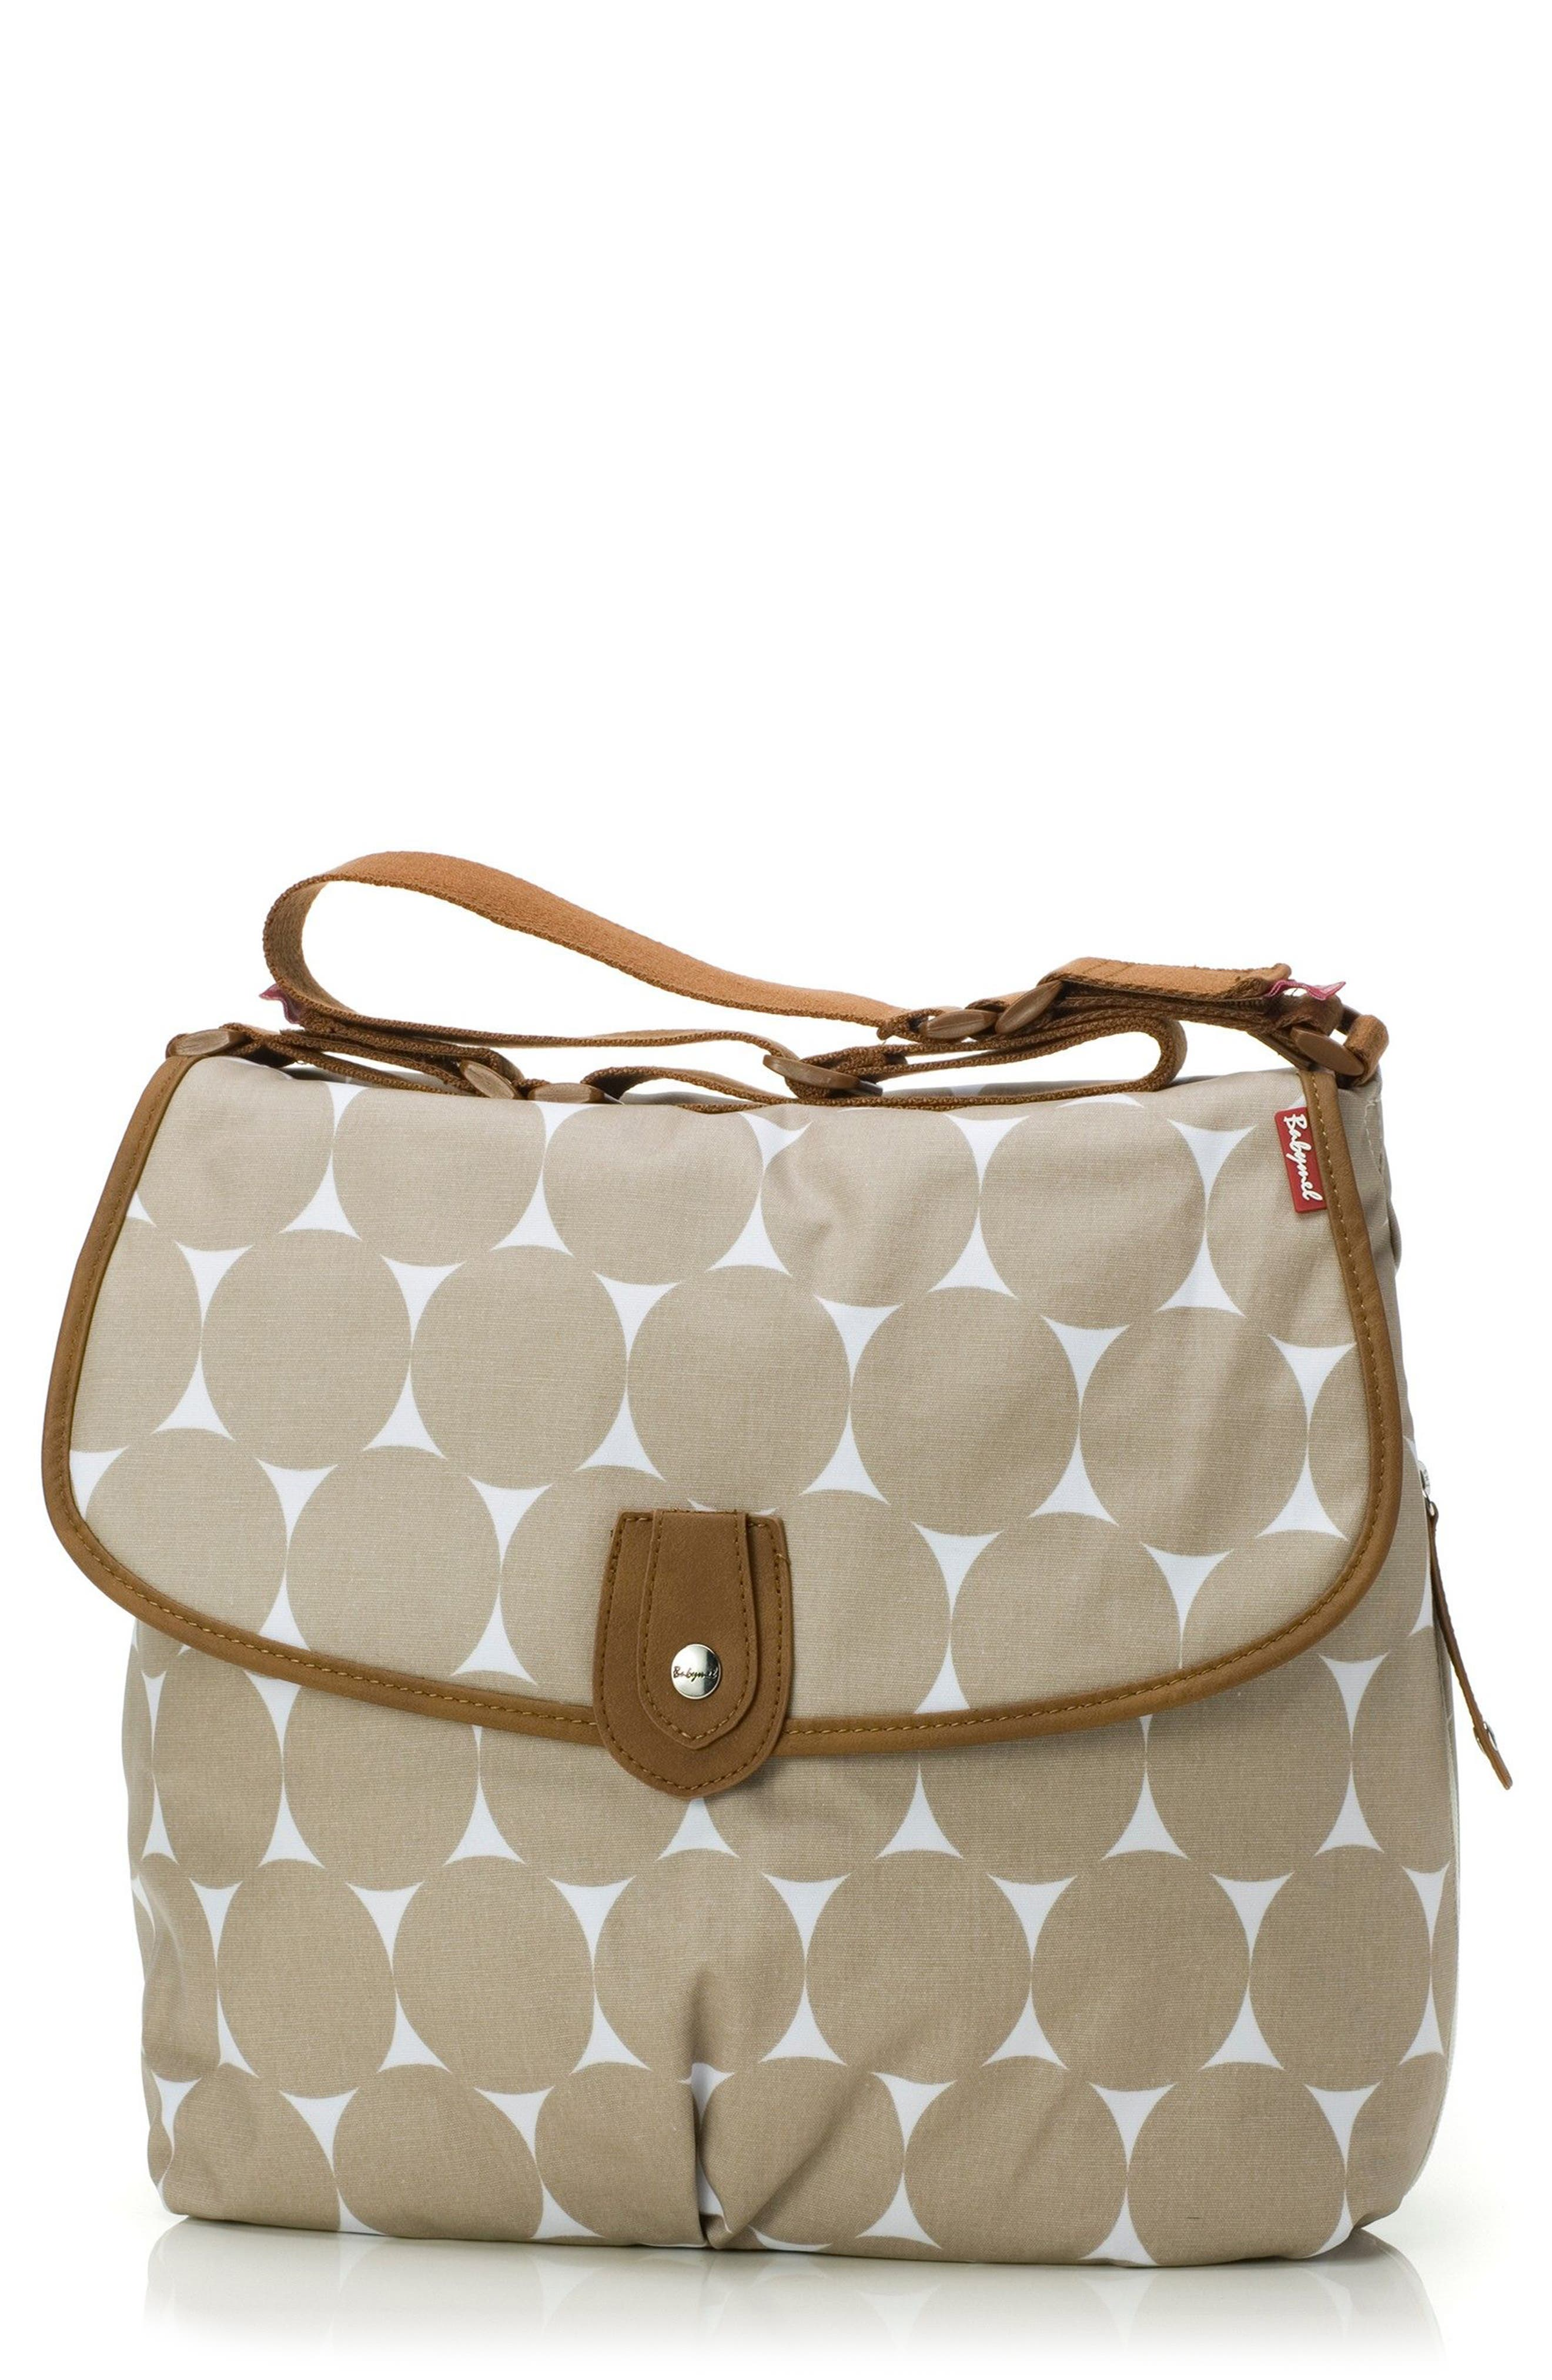 Babymel 'Satchel' Diaper Bag